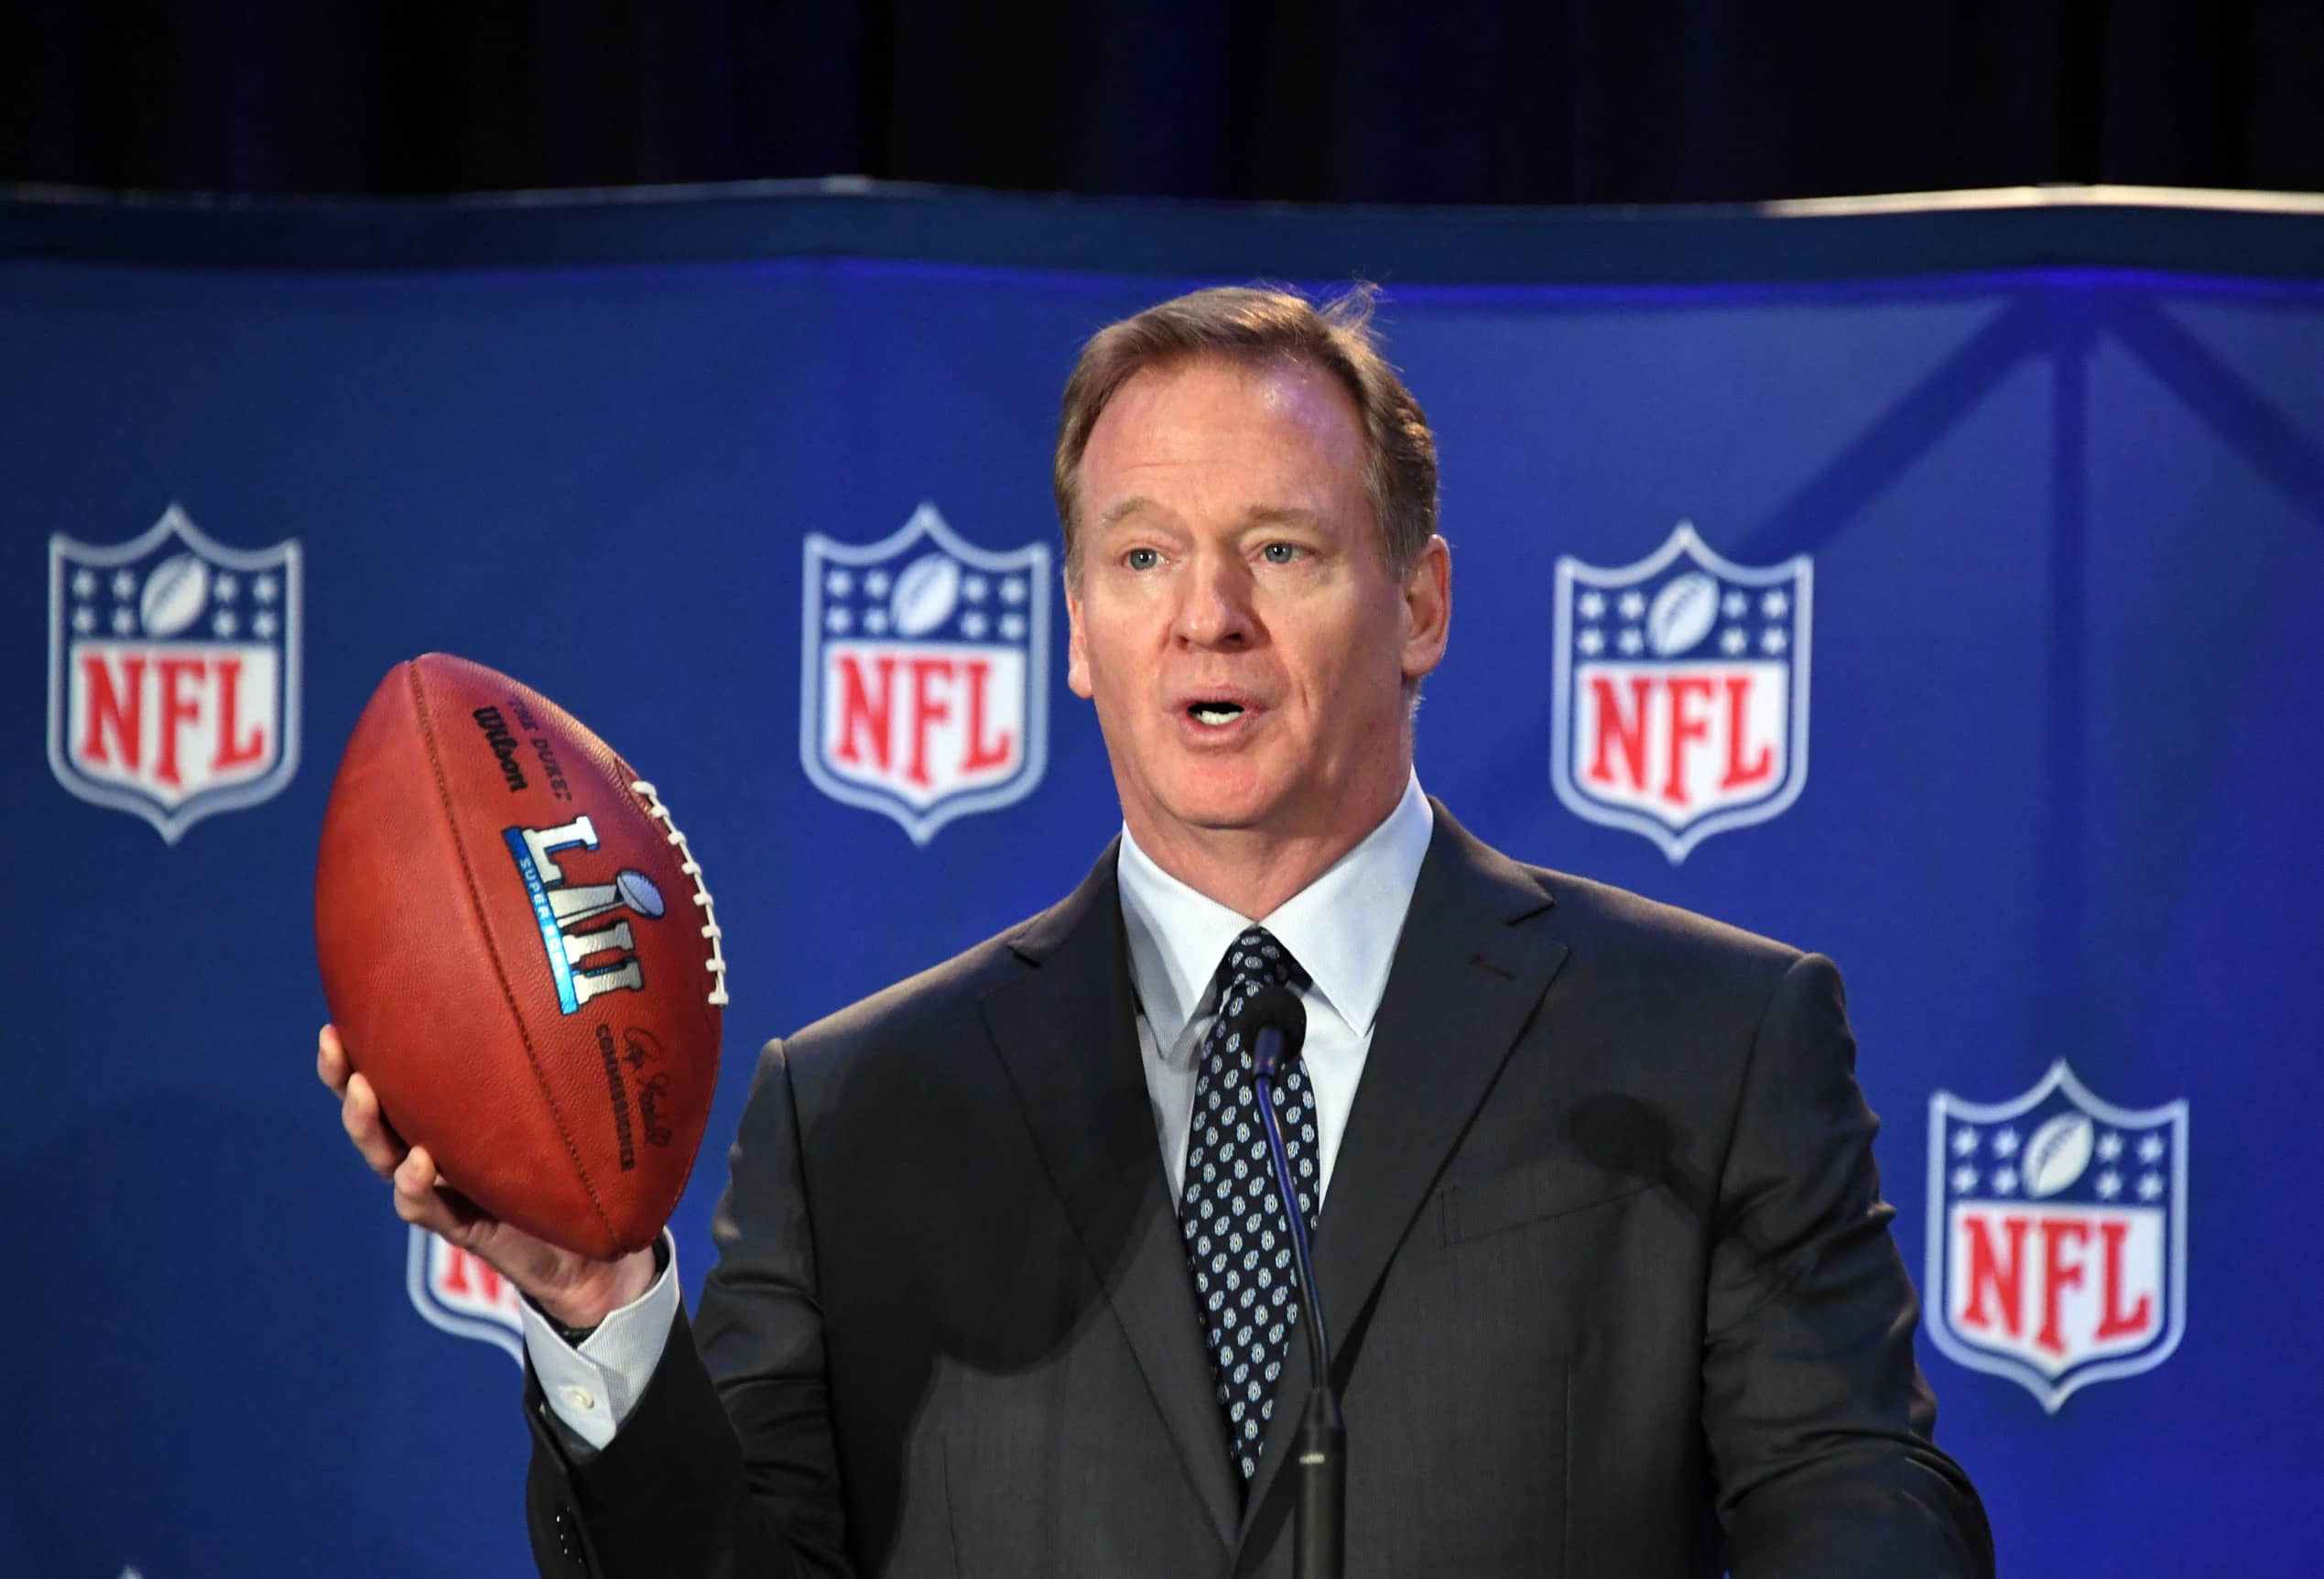 Roger Goodell doesn't have the authority to overturn NFC Championship game result